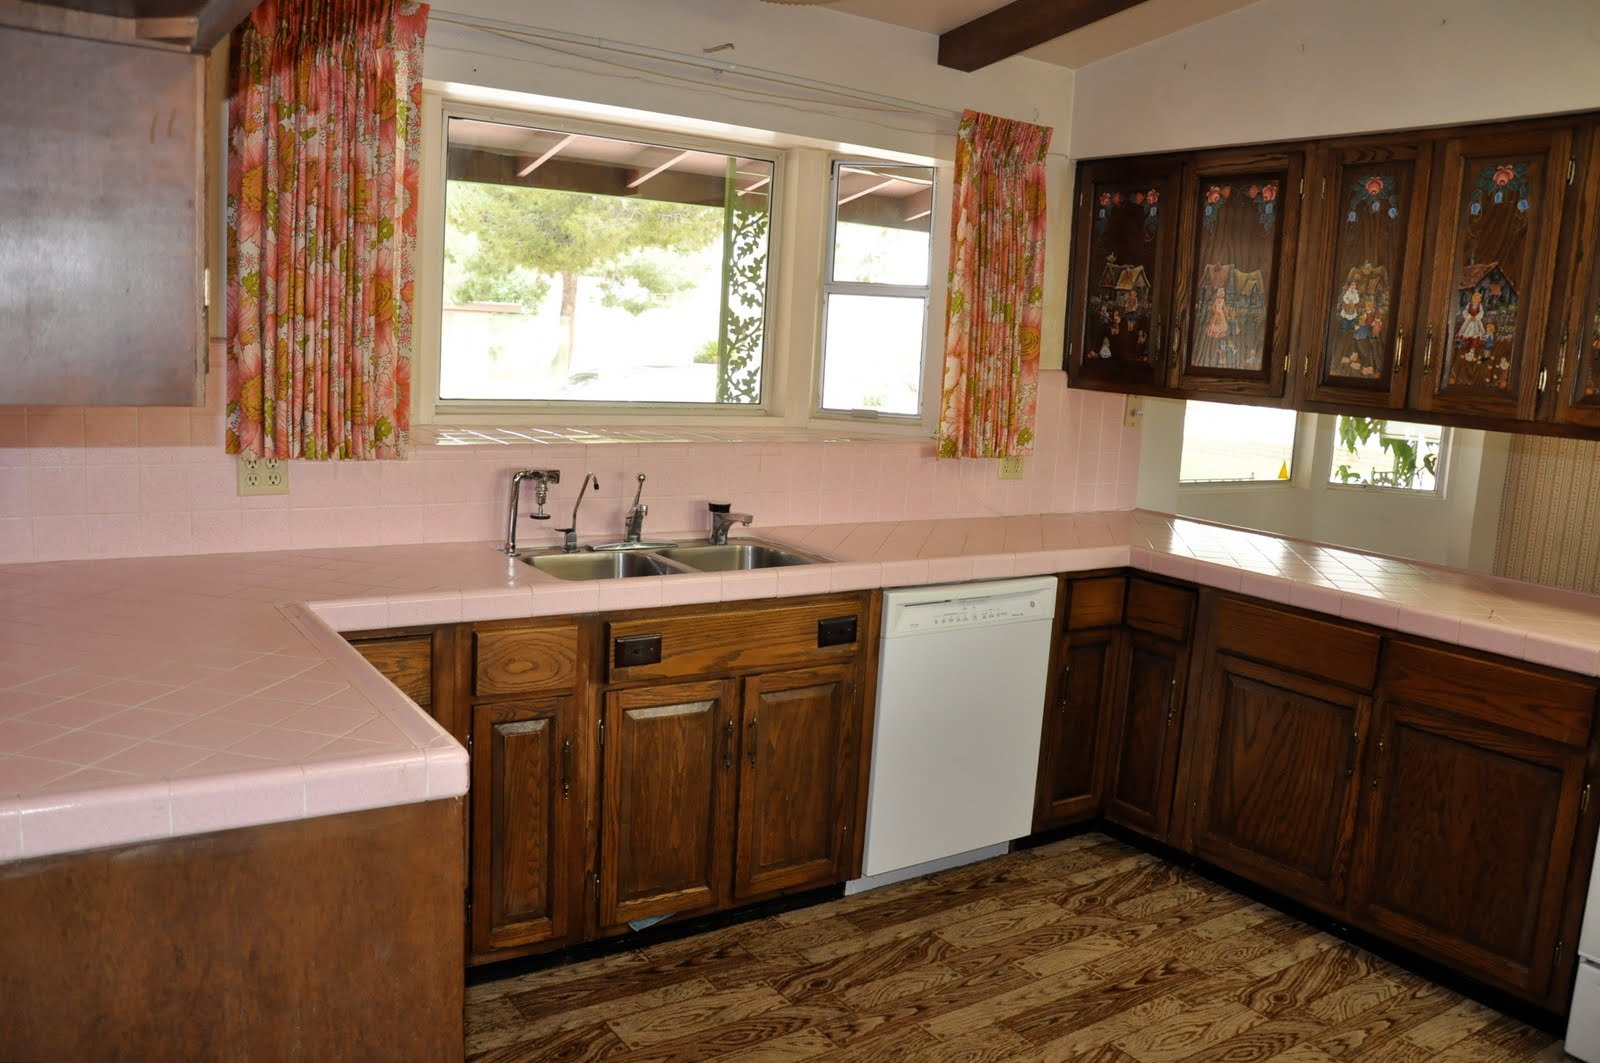 Pink plastic inserts in the upper cabinets.